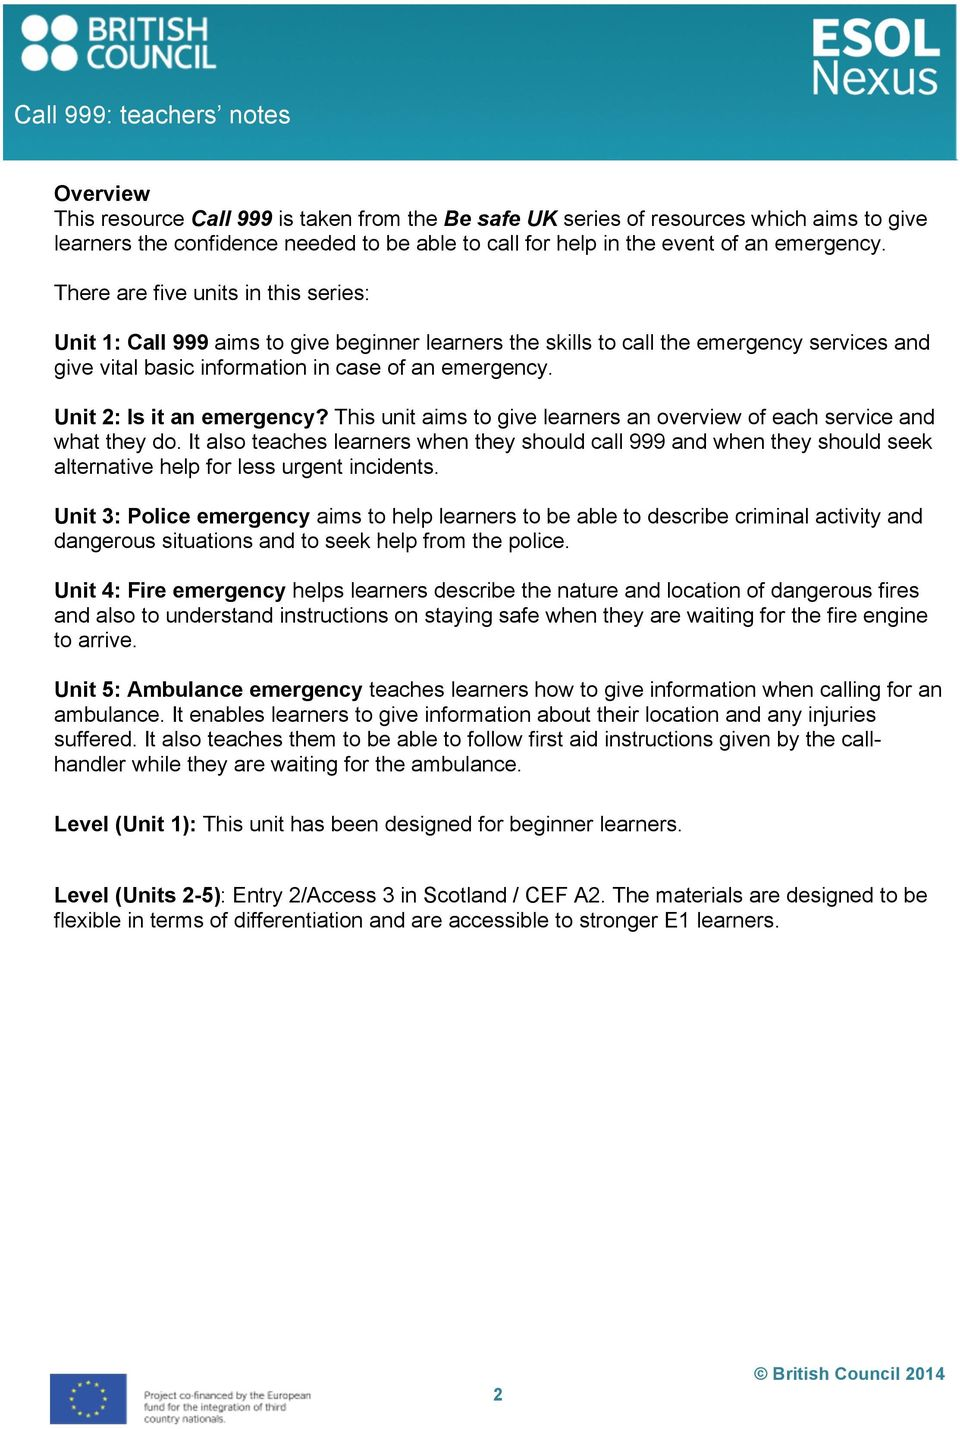 Unit 2: Is it an emergency? This unit aims to give learners an overview of each service and what they do.